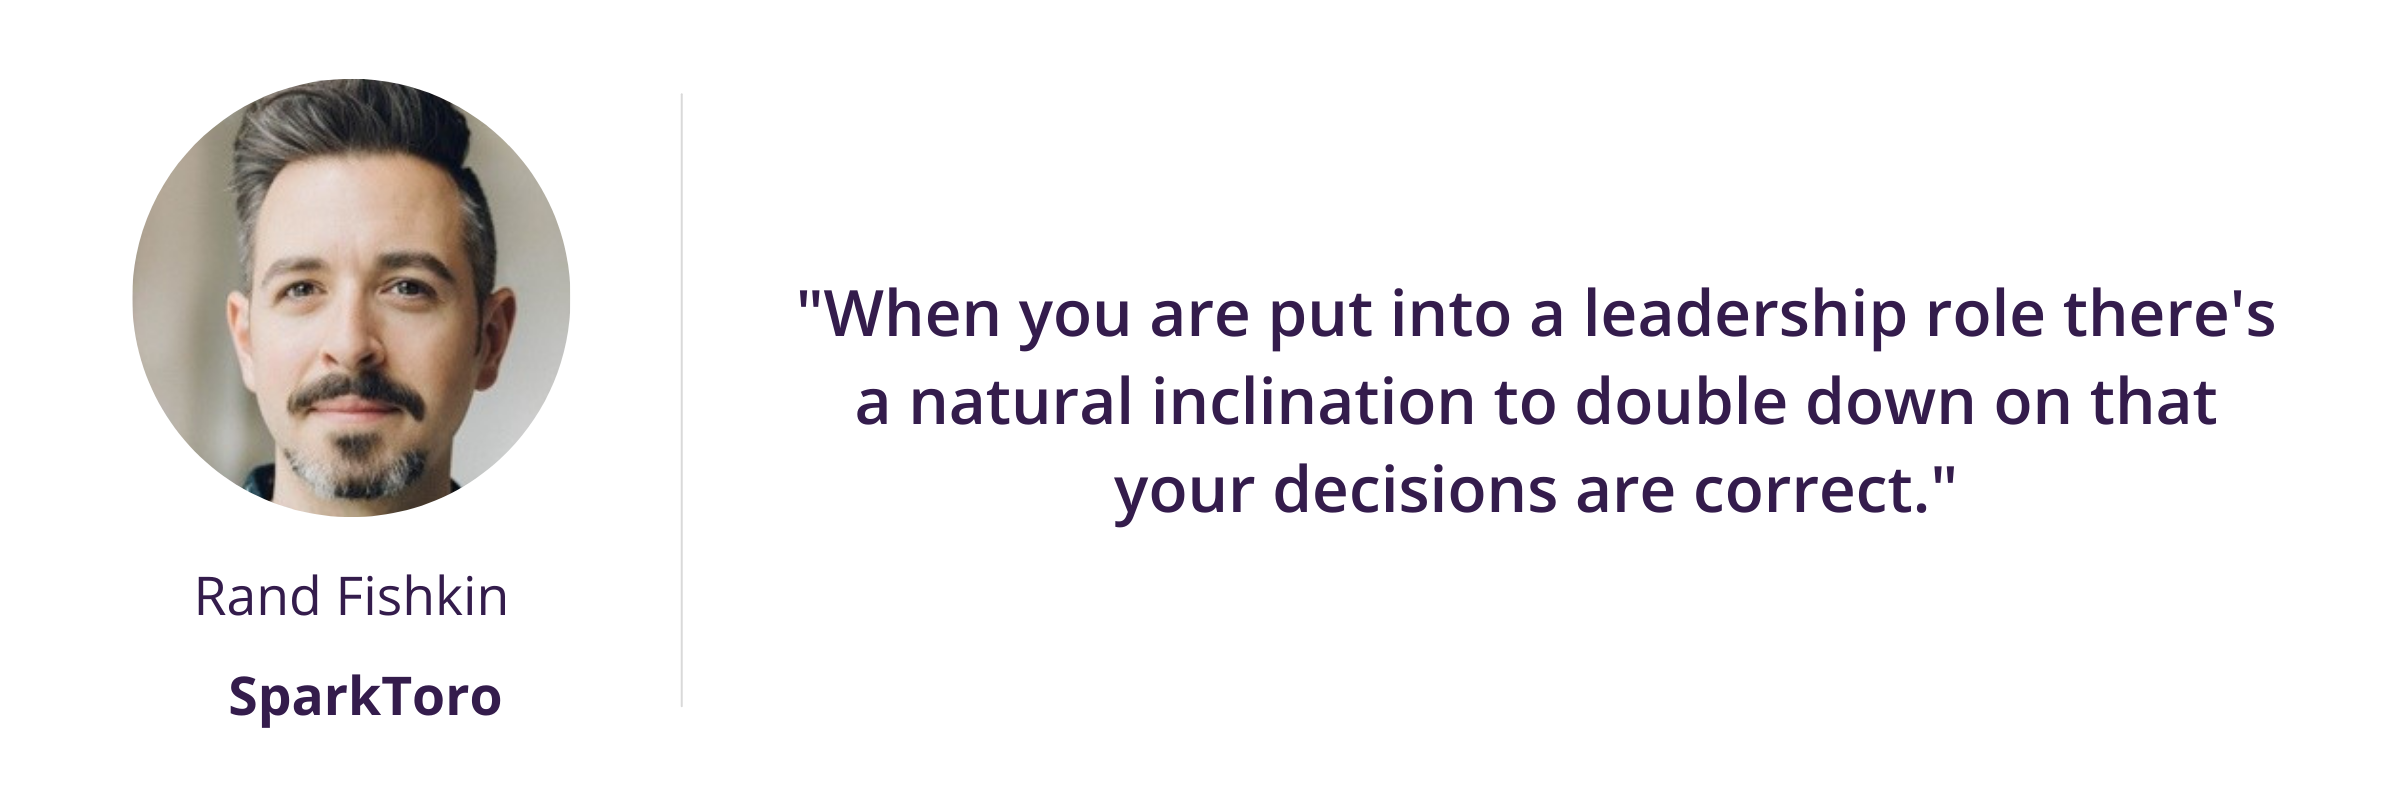 """""""When you are put into a leadership role there's a natural inclination to double down on that your decisions are correct."""""""